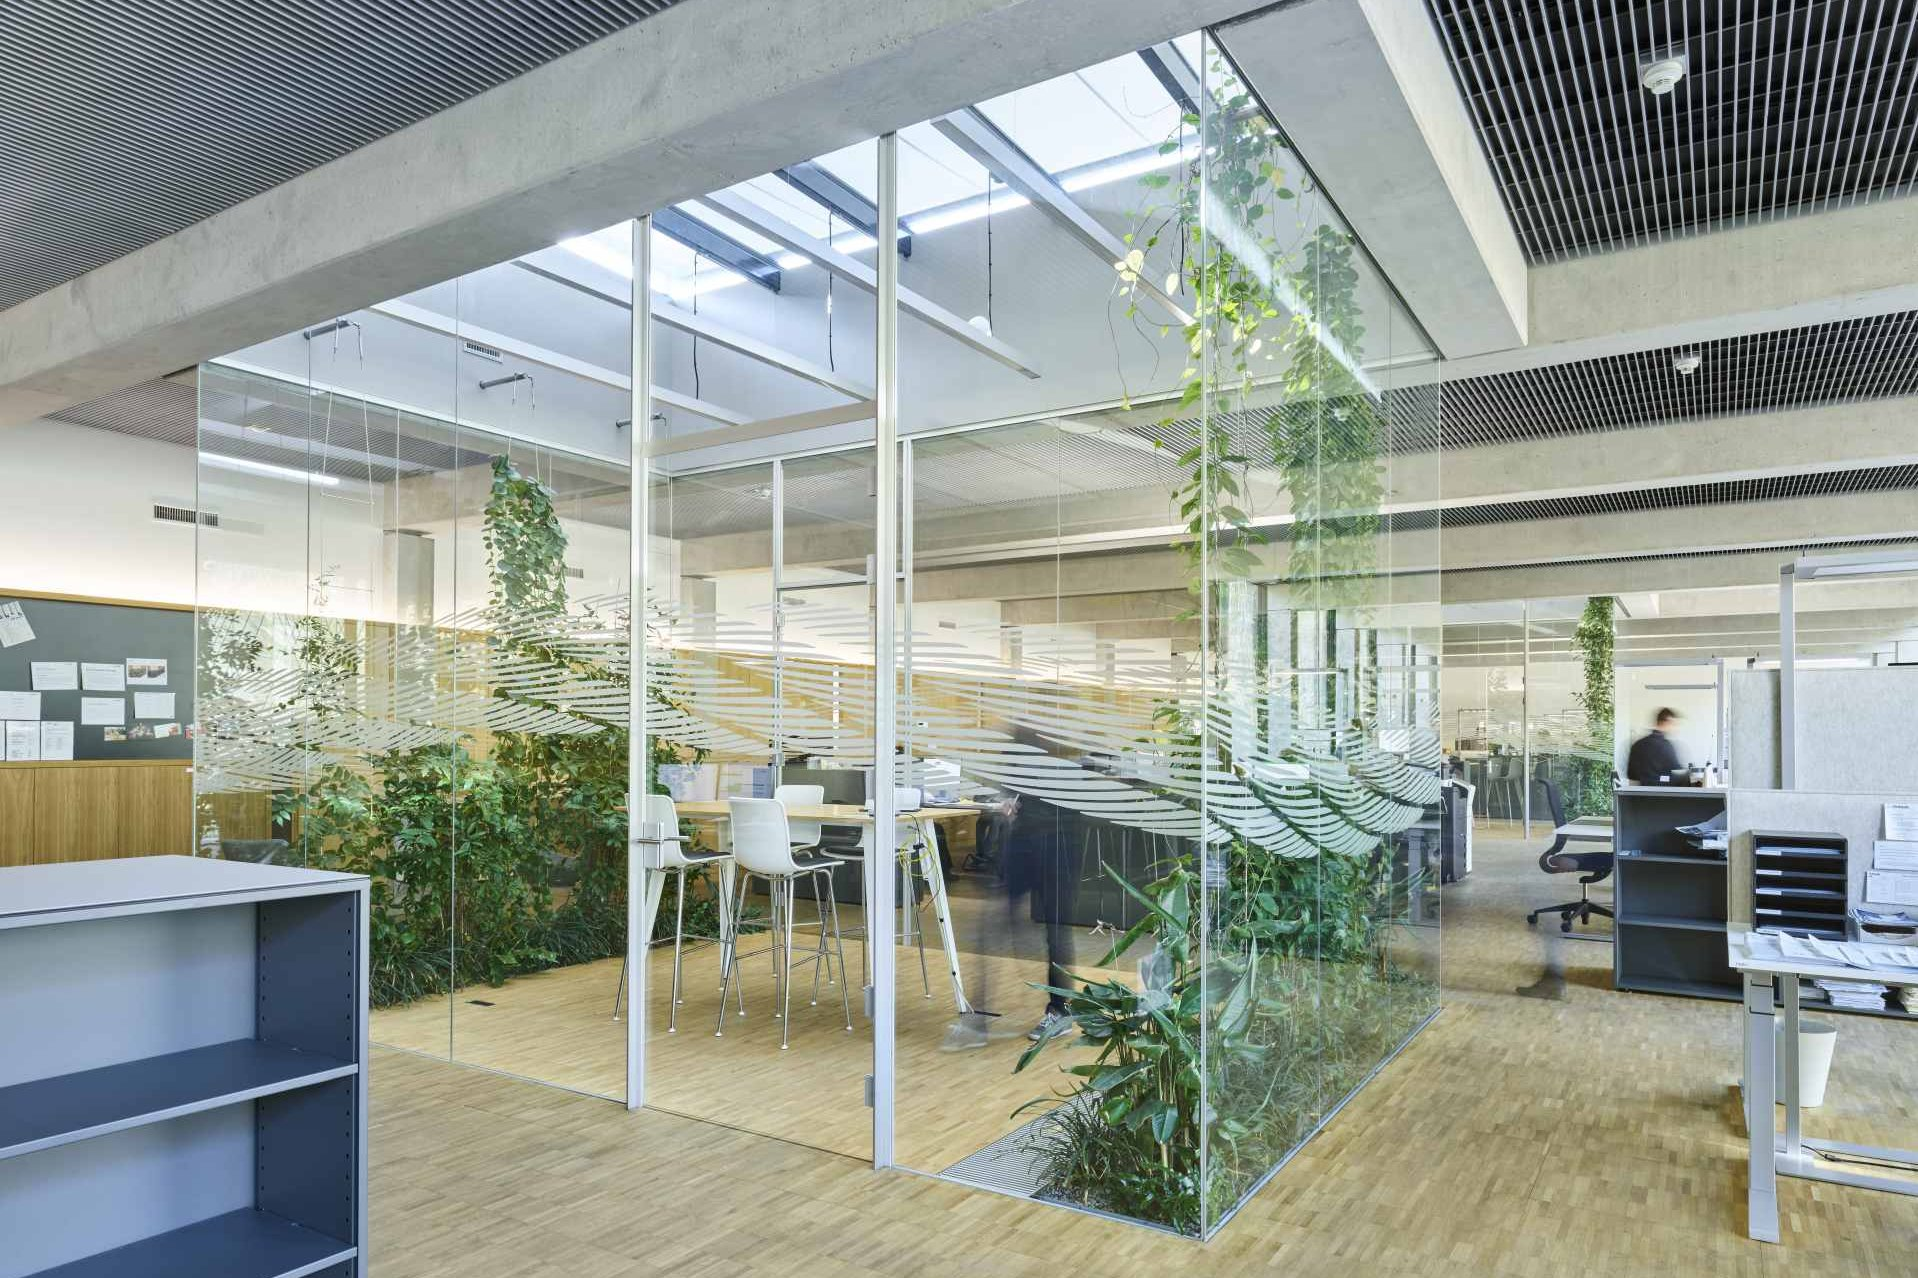 Interior of the new Jakob office with a co-working space and indoor greening